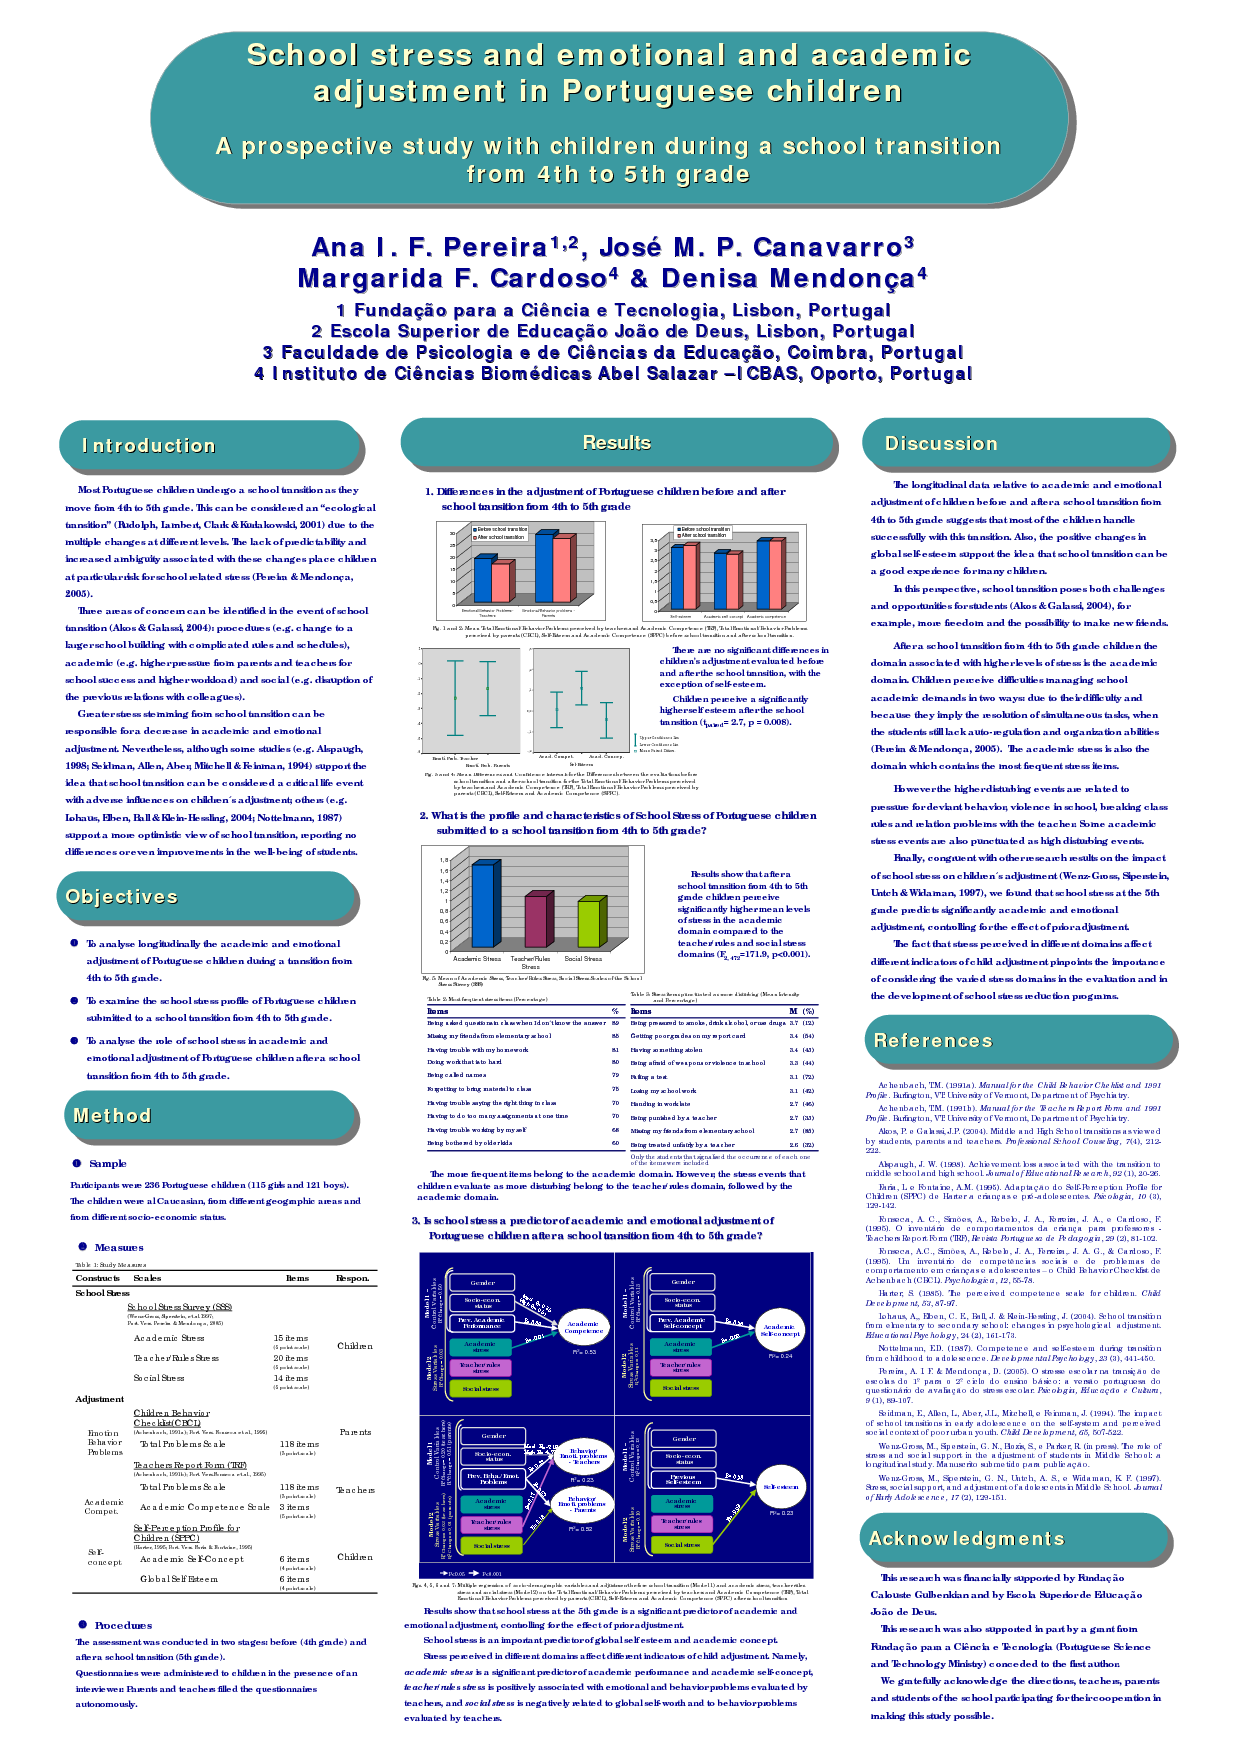 Tufts University Powerpoint Poster Session Templates  Institution